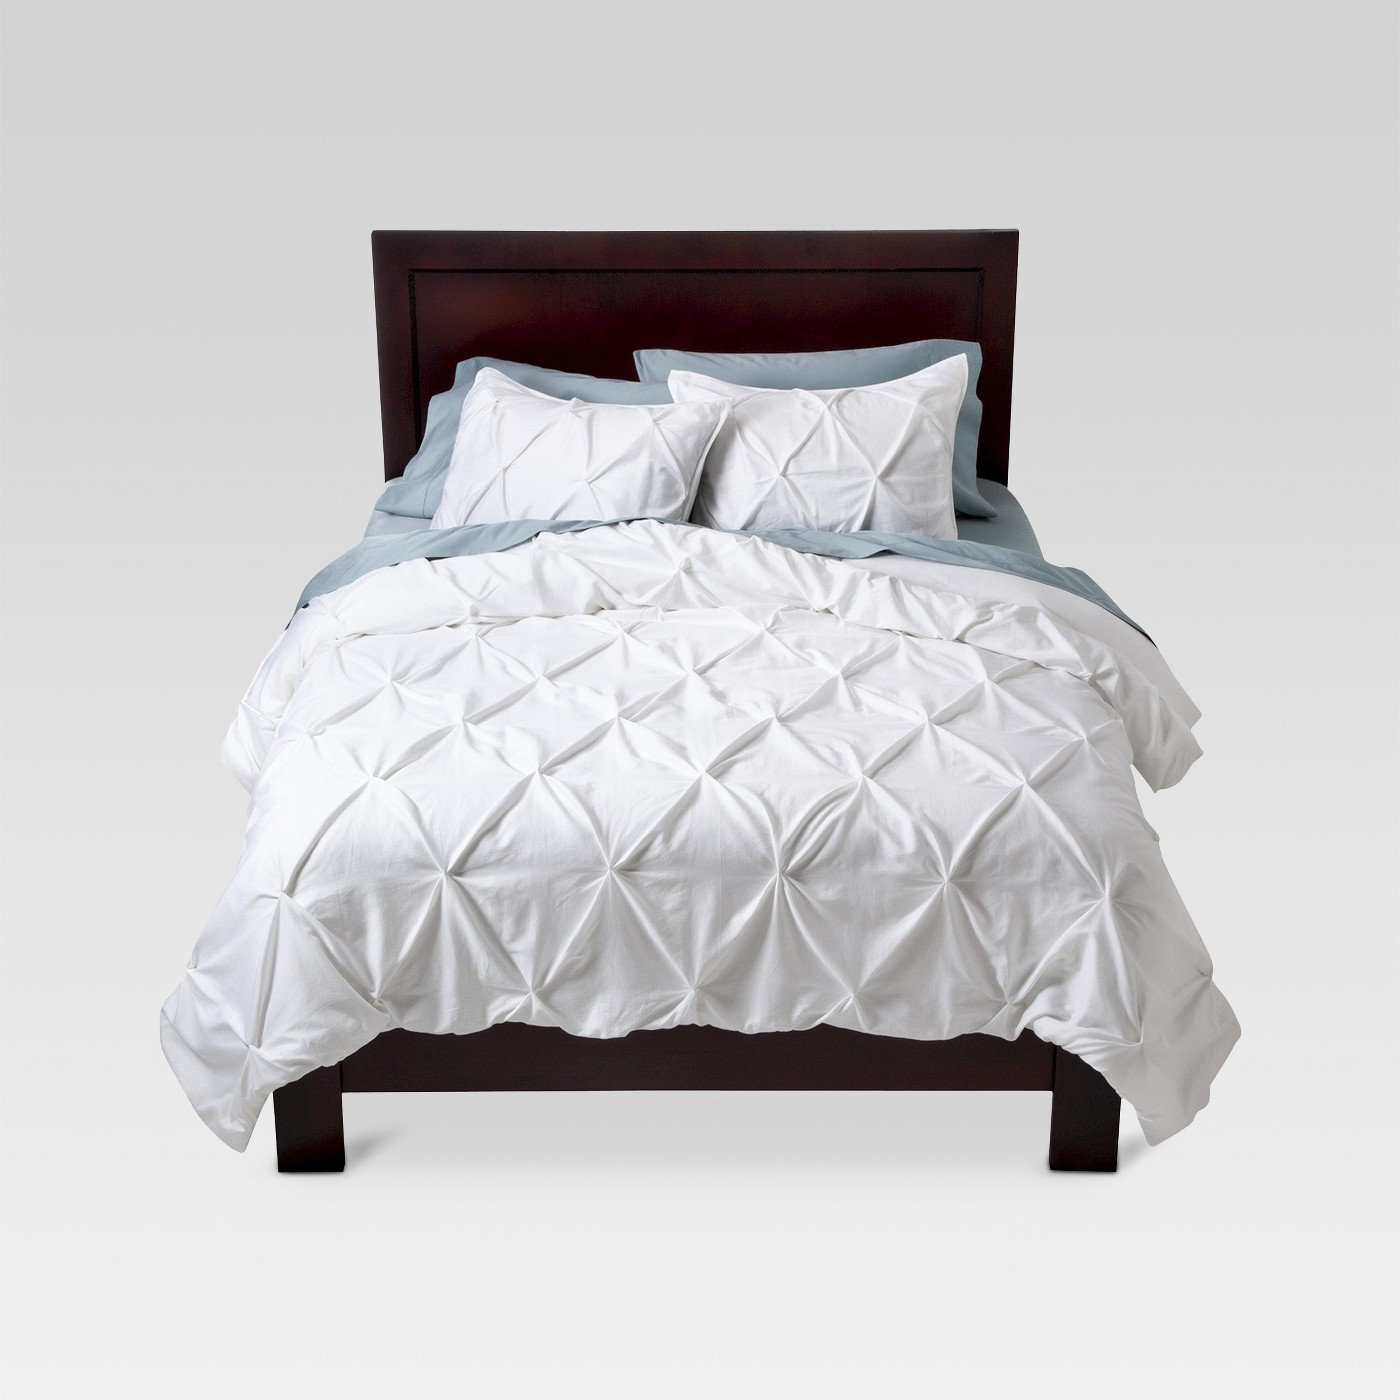 White Pinched Pleat Comforter Set (Full/Queen) 3pc - Threshold™ - image 1 of 9